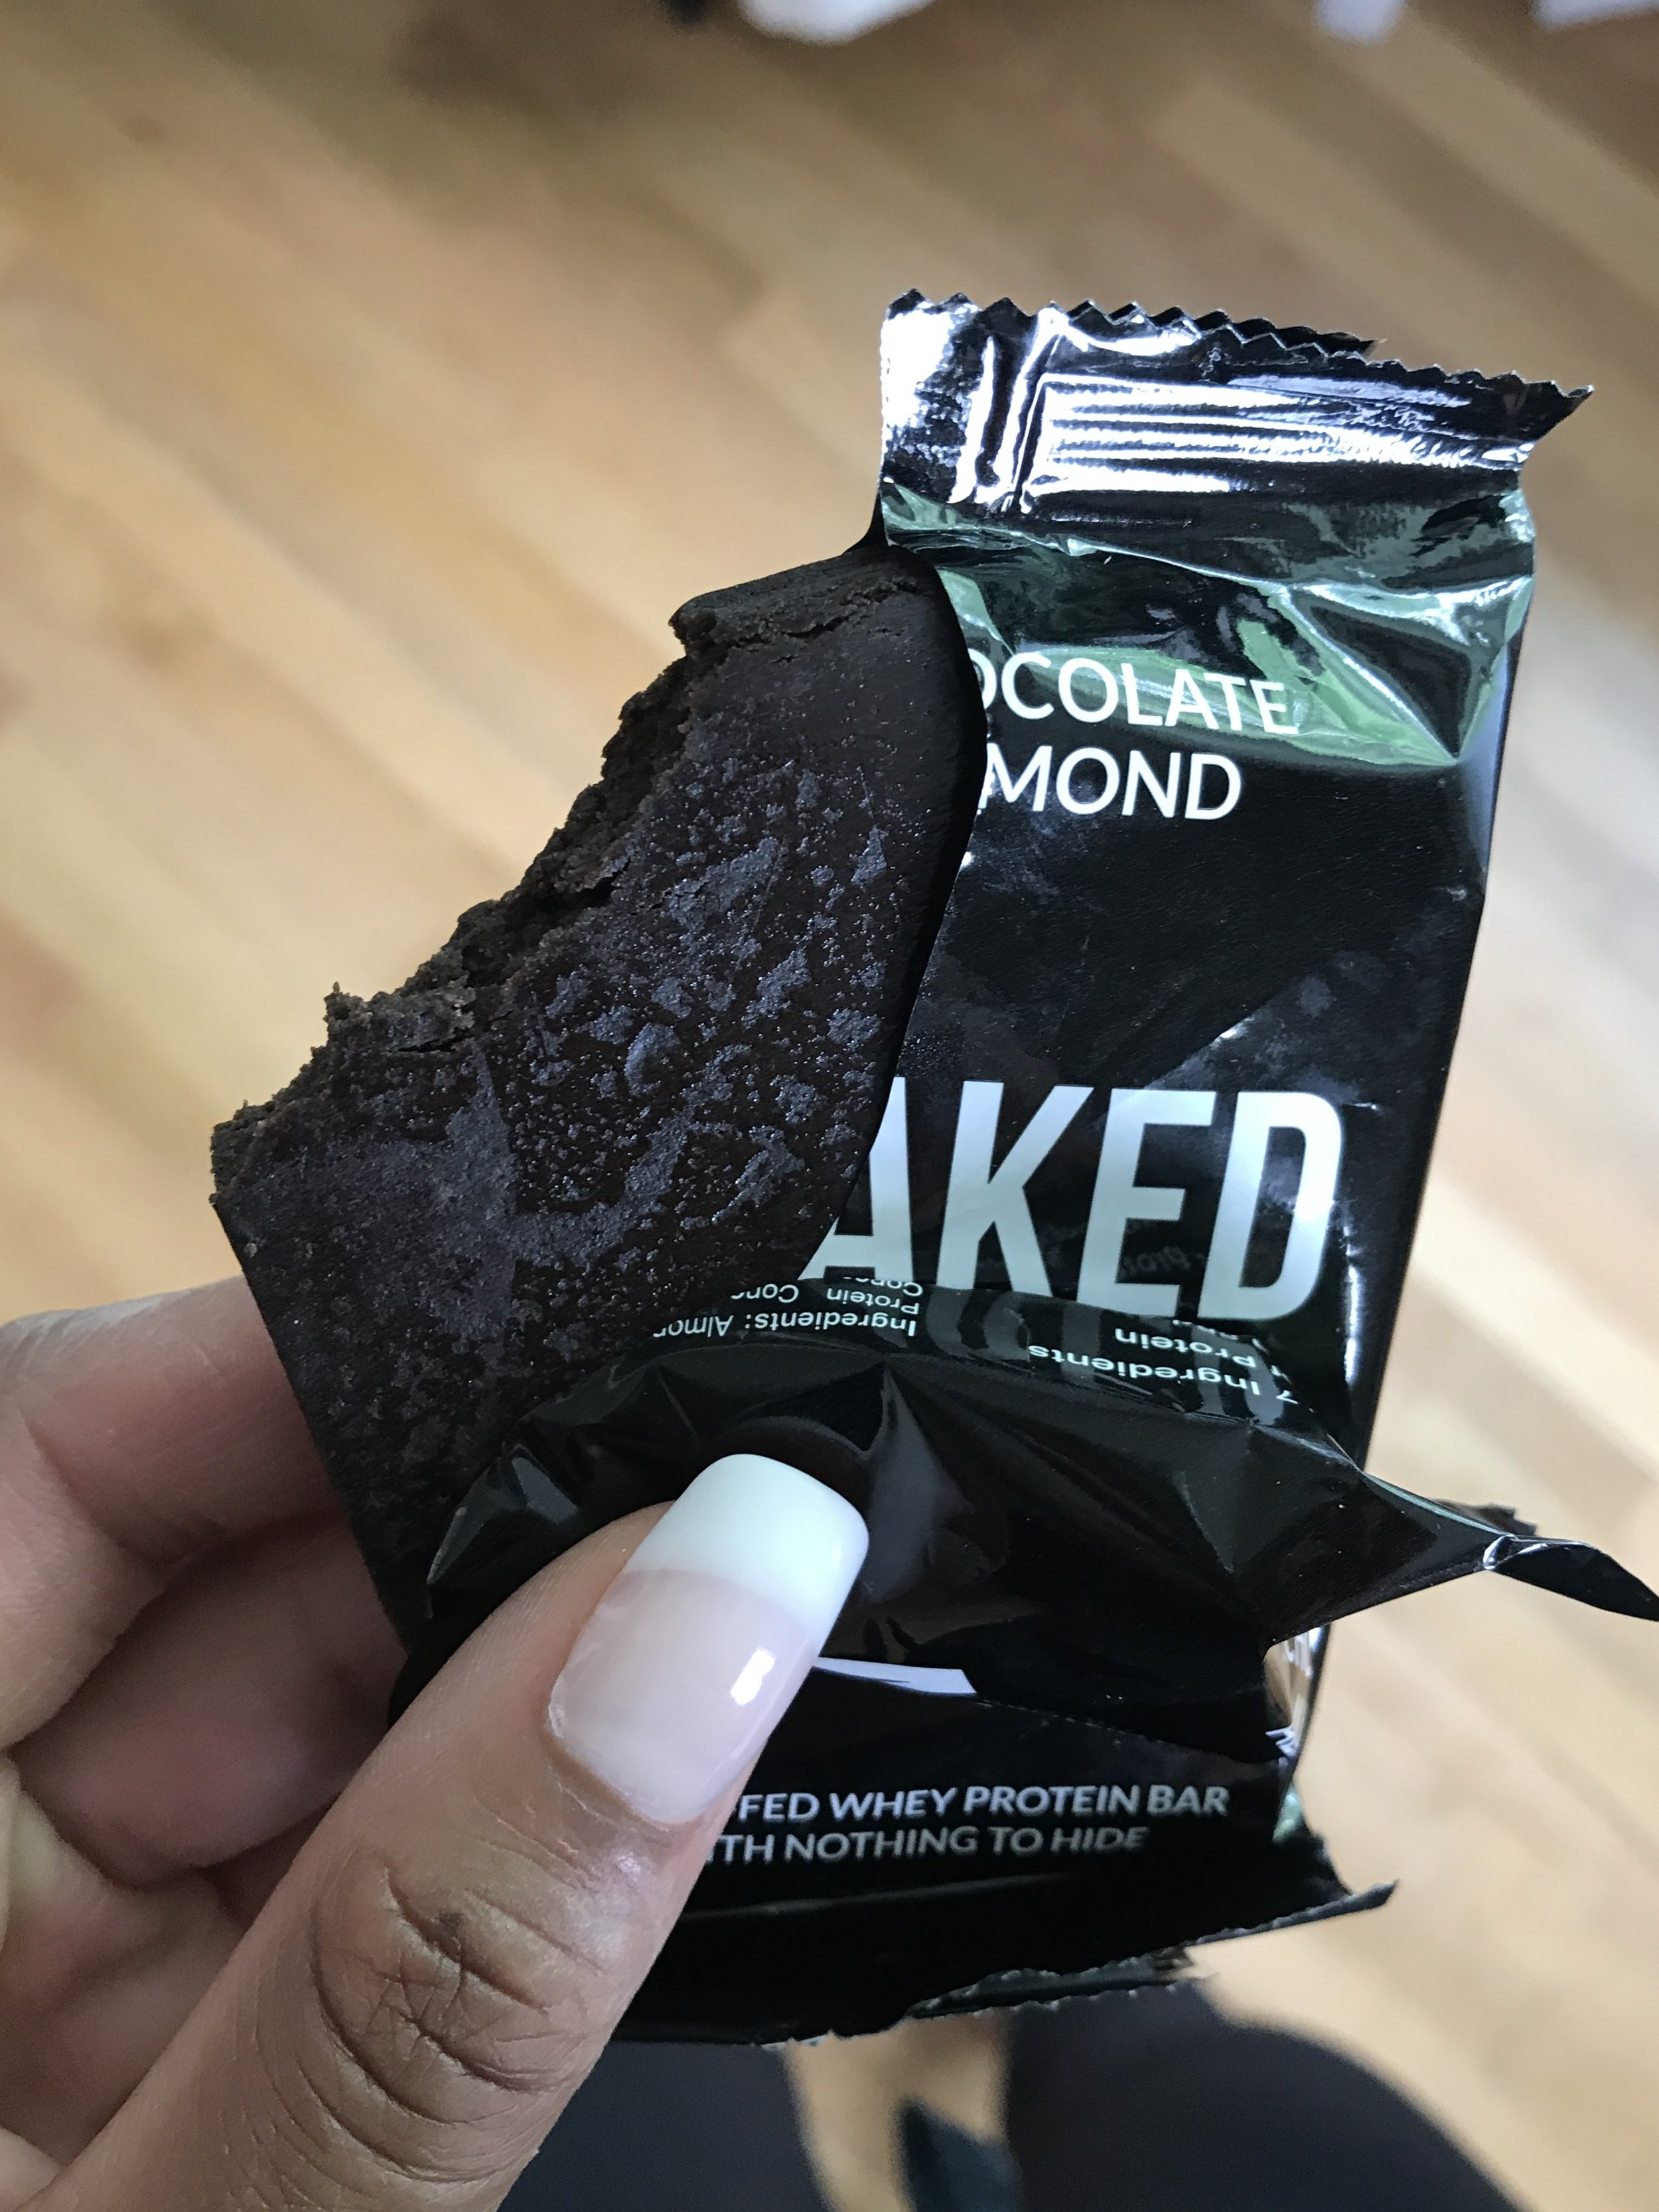 naked-nutrition-gluten-free-protein-bar-review-3.jpg